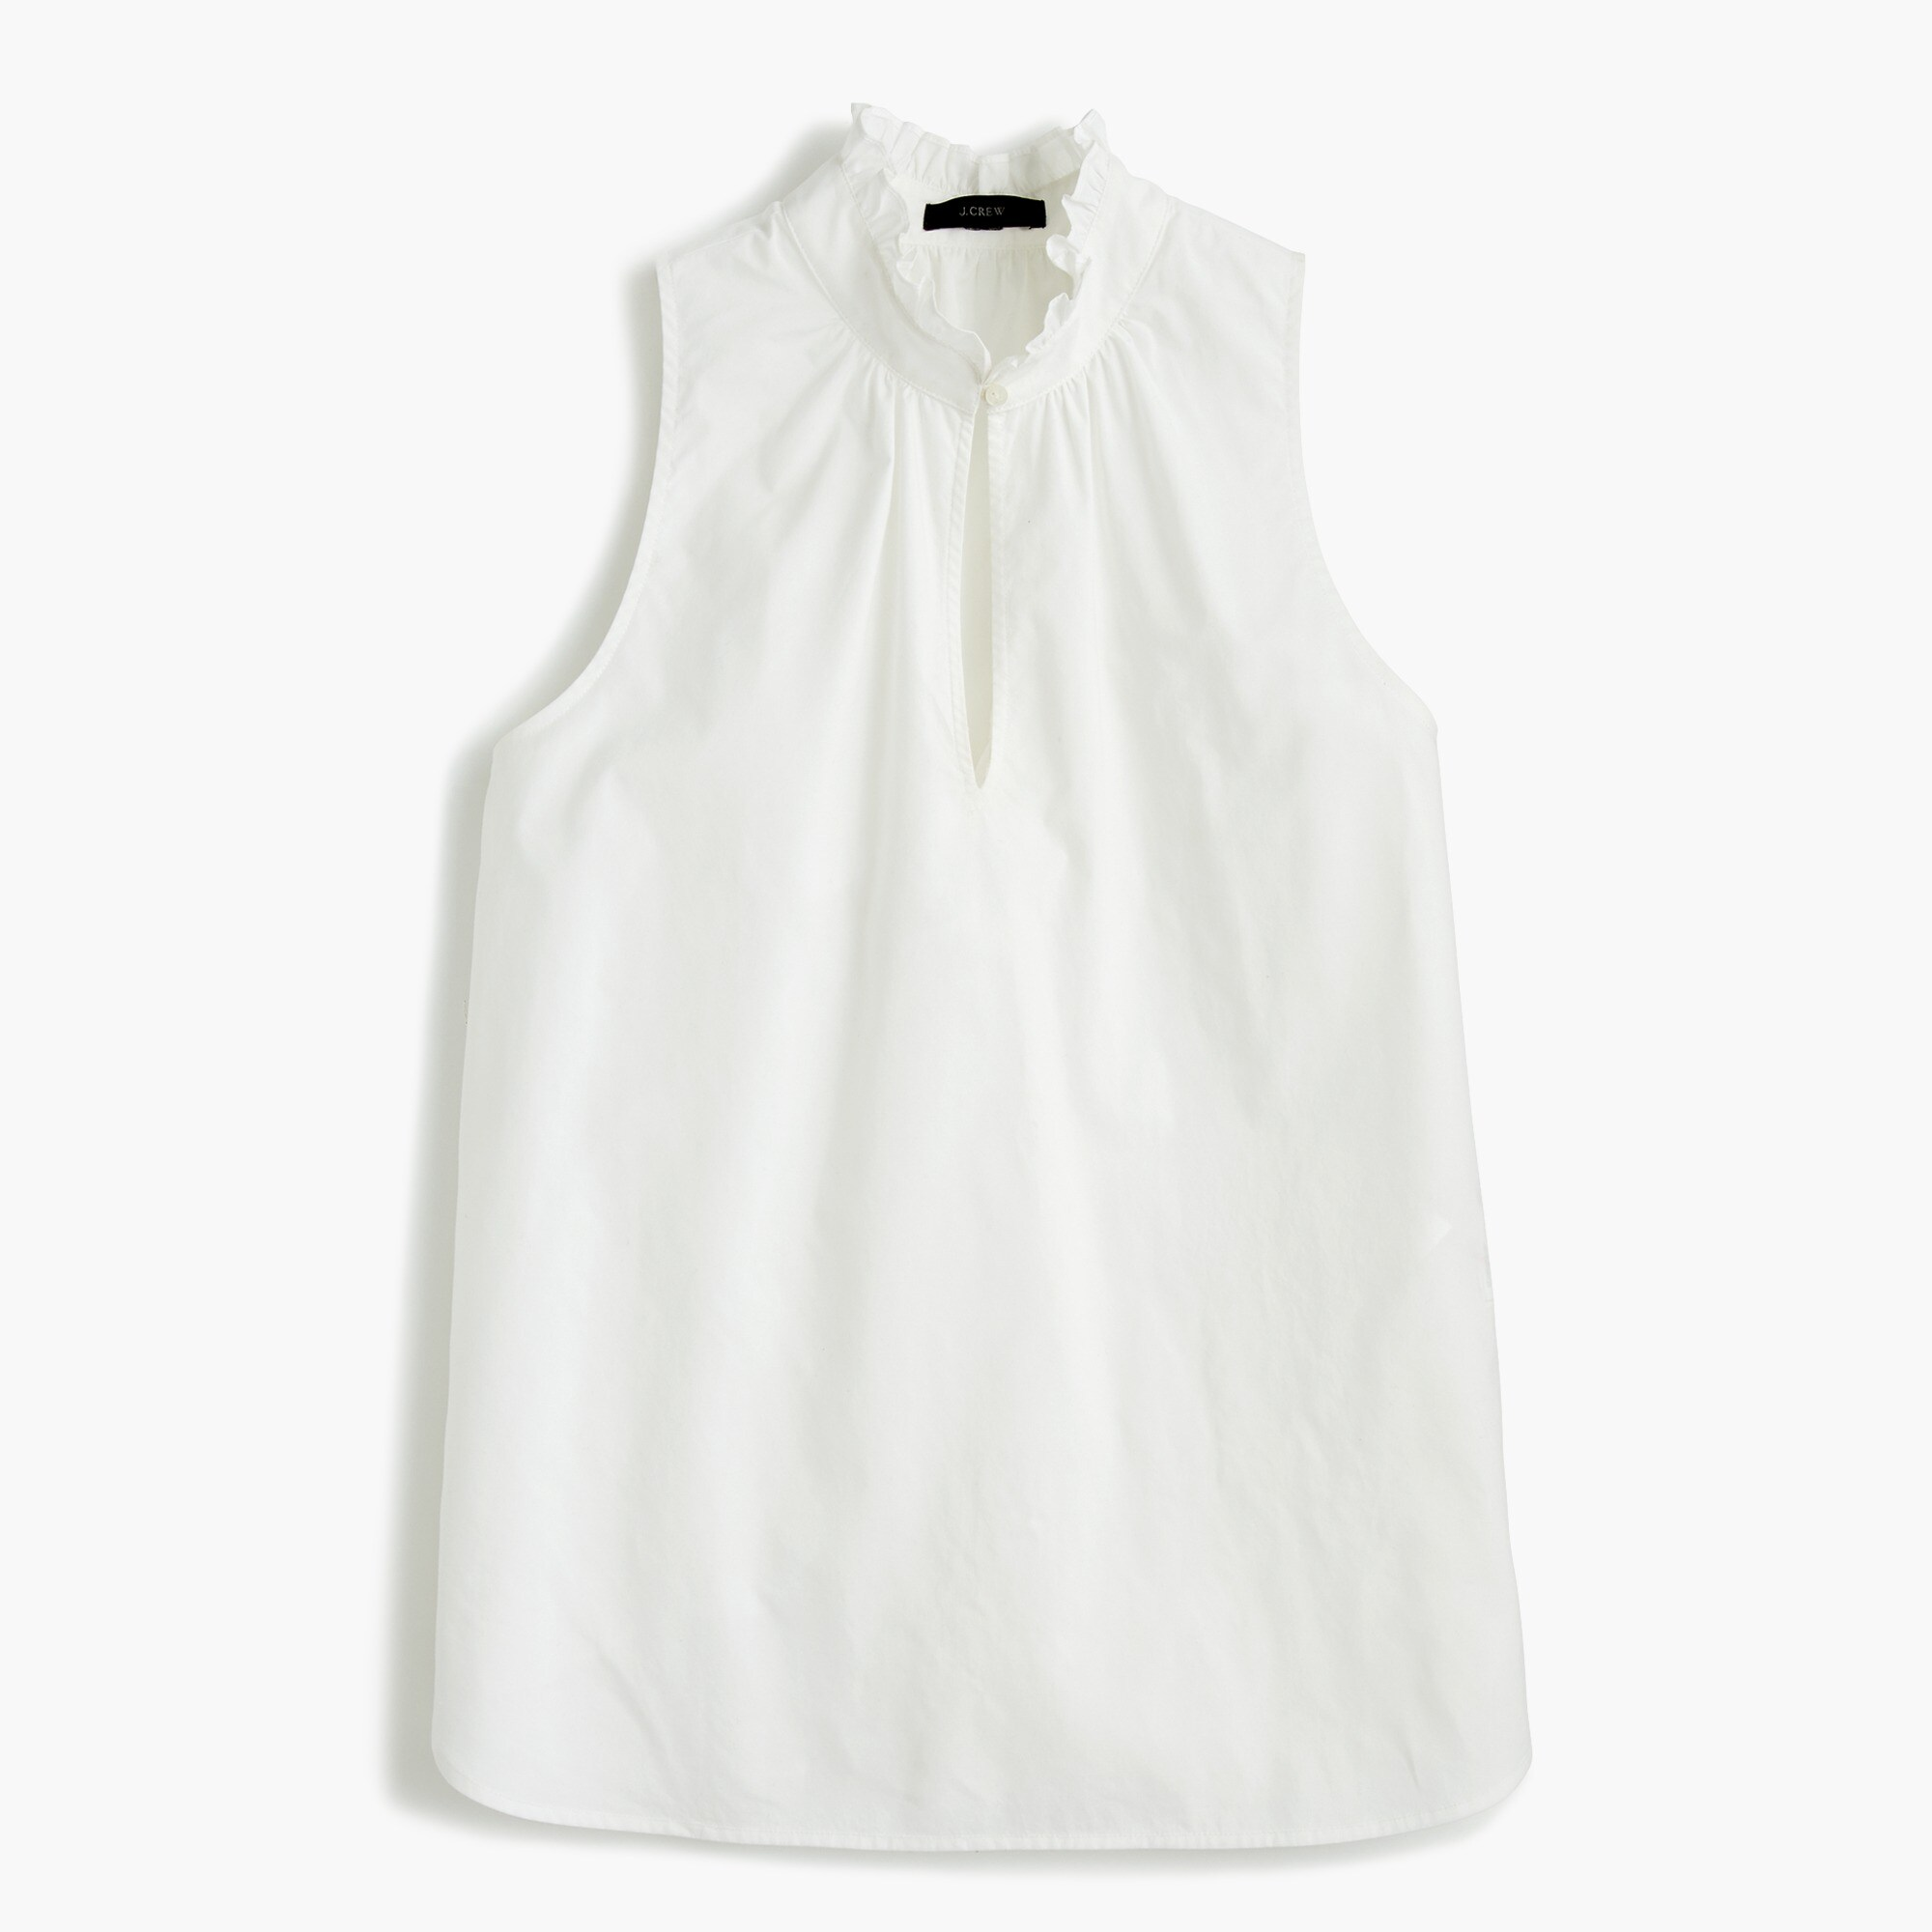 Tall ruffle-neck top in cotton poplin